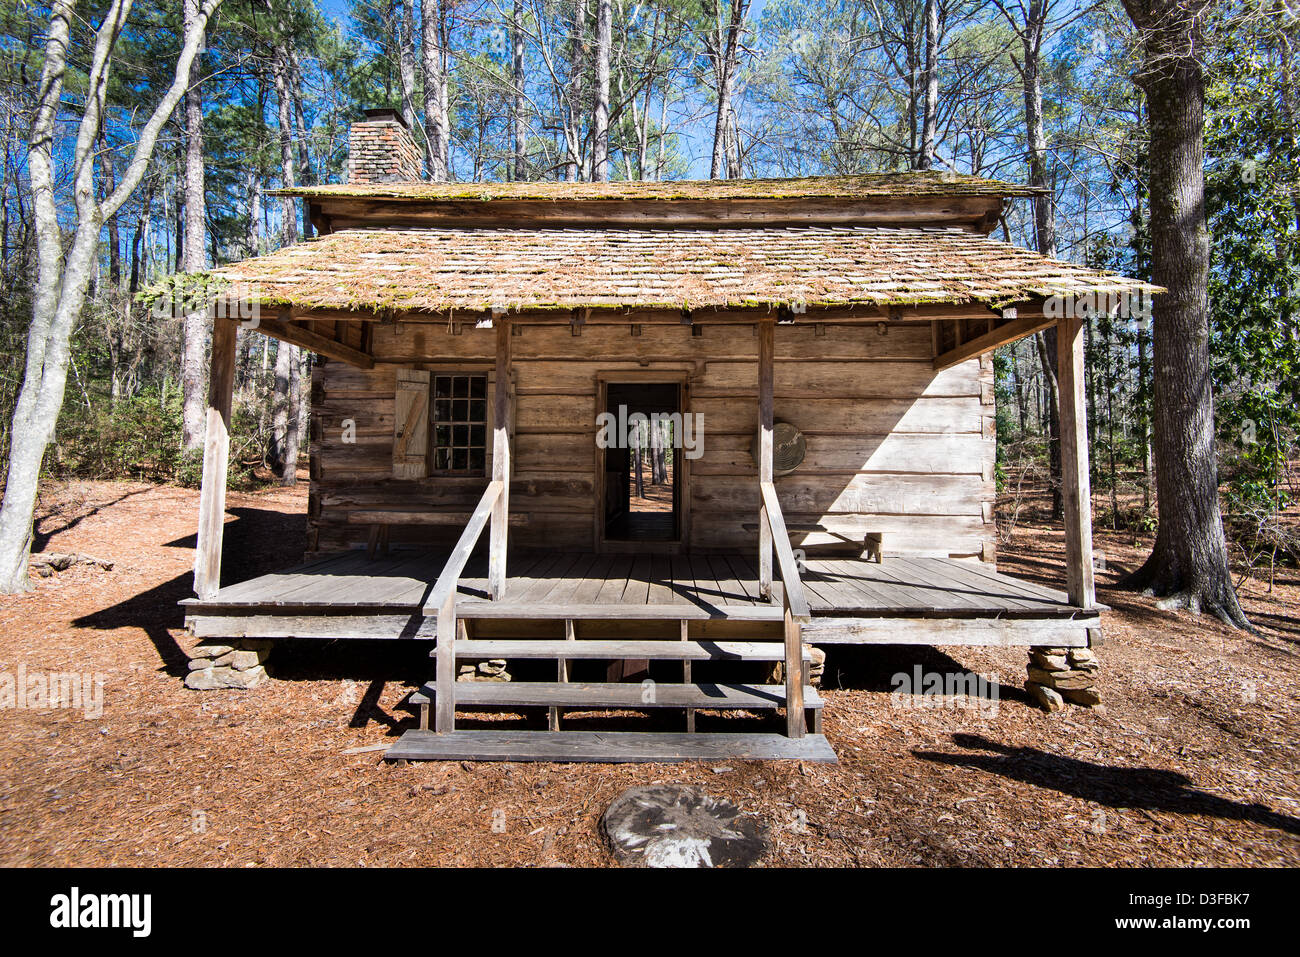 This Hand hewn Longleaf Pine Log Cabin Was Built Around 1830